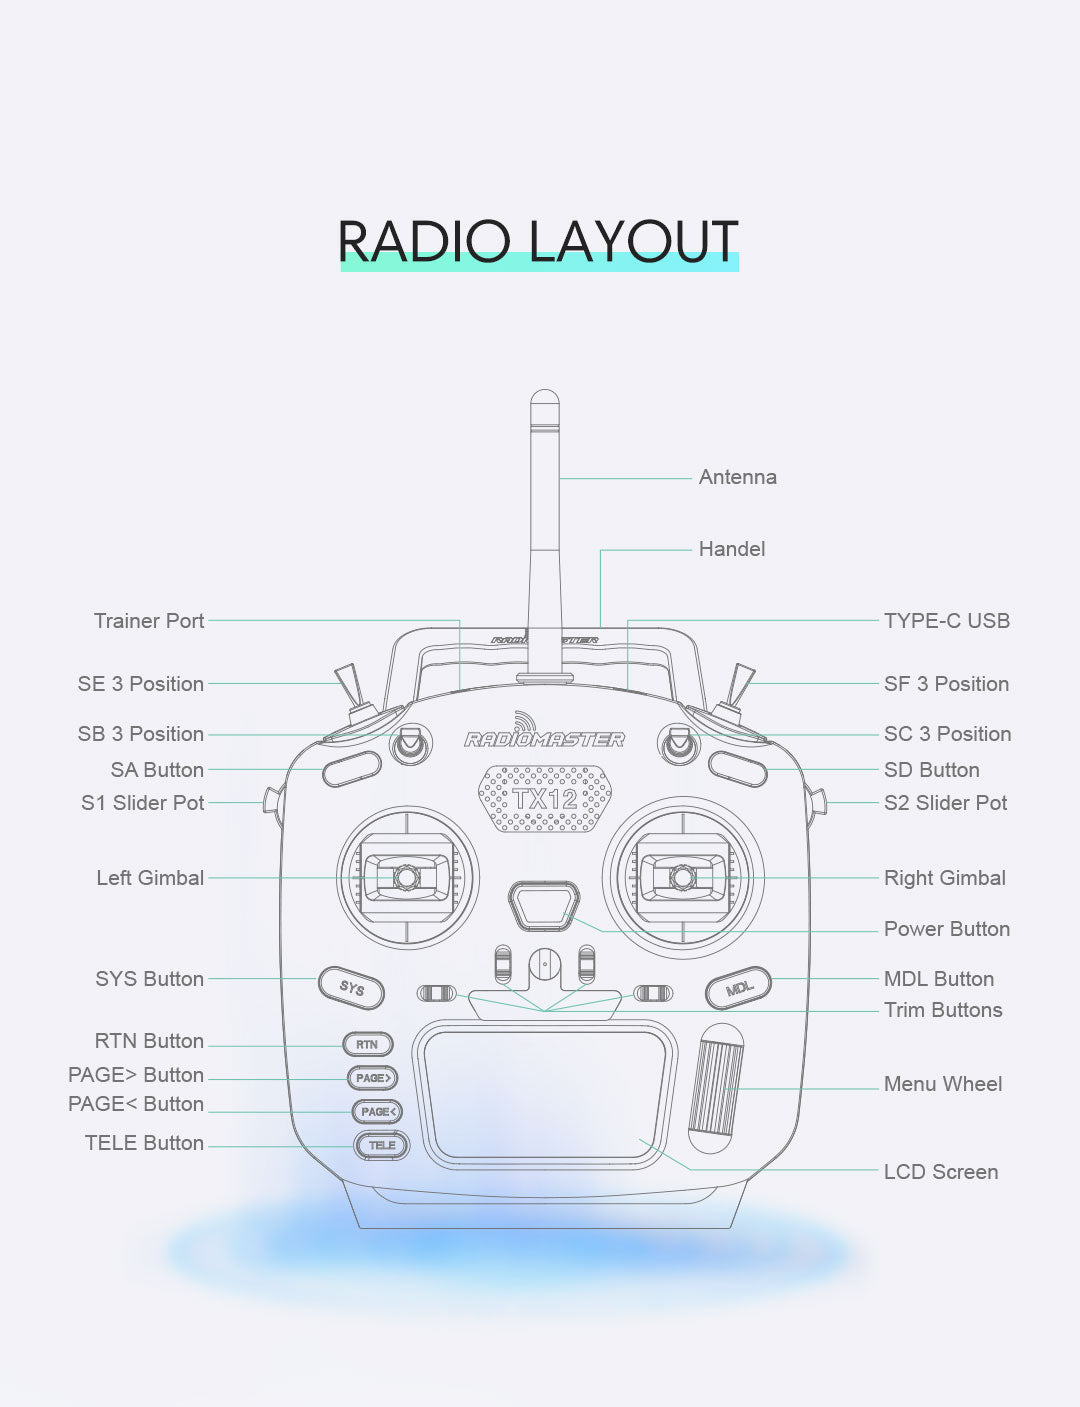 RadioMaster TX12 Radio Layout - Switches, Buttons, Gimbals